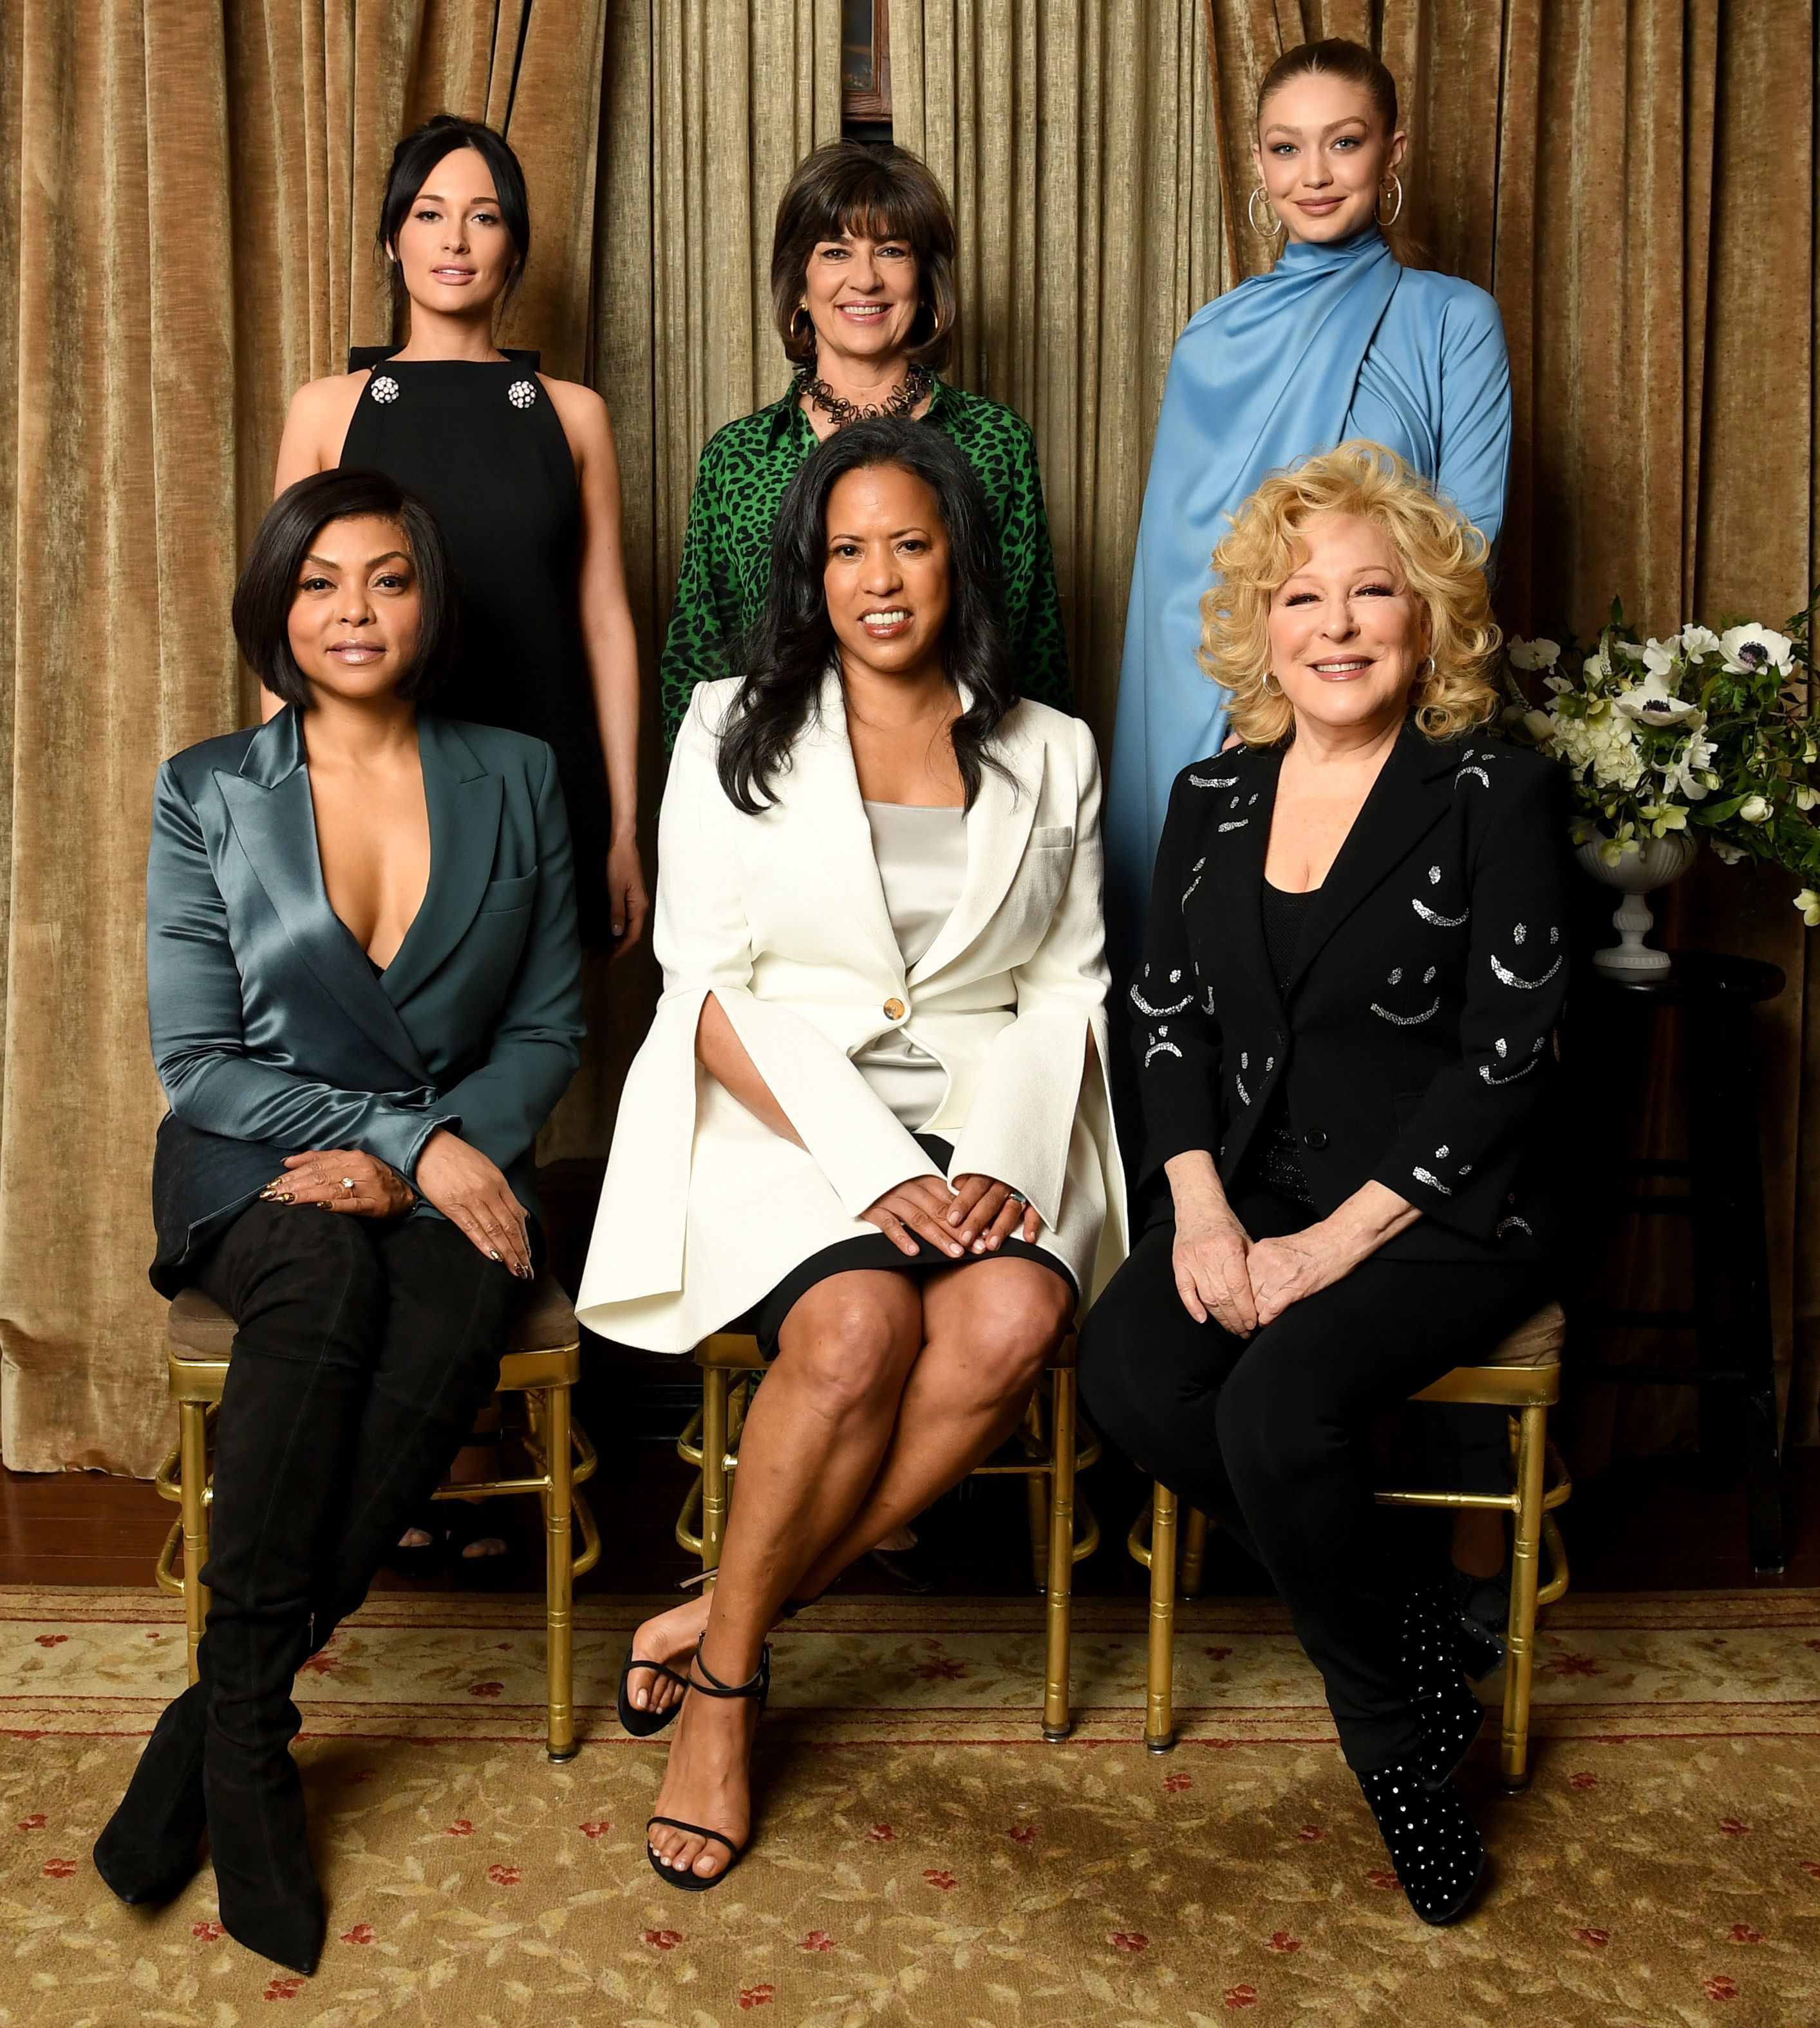 Kacey Musgraves, Taraji P. Henson, Christiane Amanpour, Michelle Ebanks, Bette Midler and Gigi Hadid attend Variety's Power of Women presented by Lifetime at Cipriani Midtown in New York City on April 5, 2019.